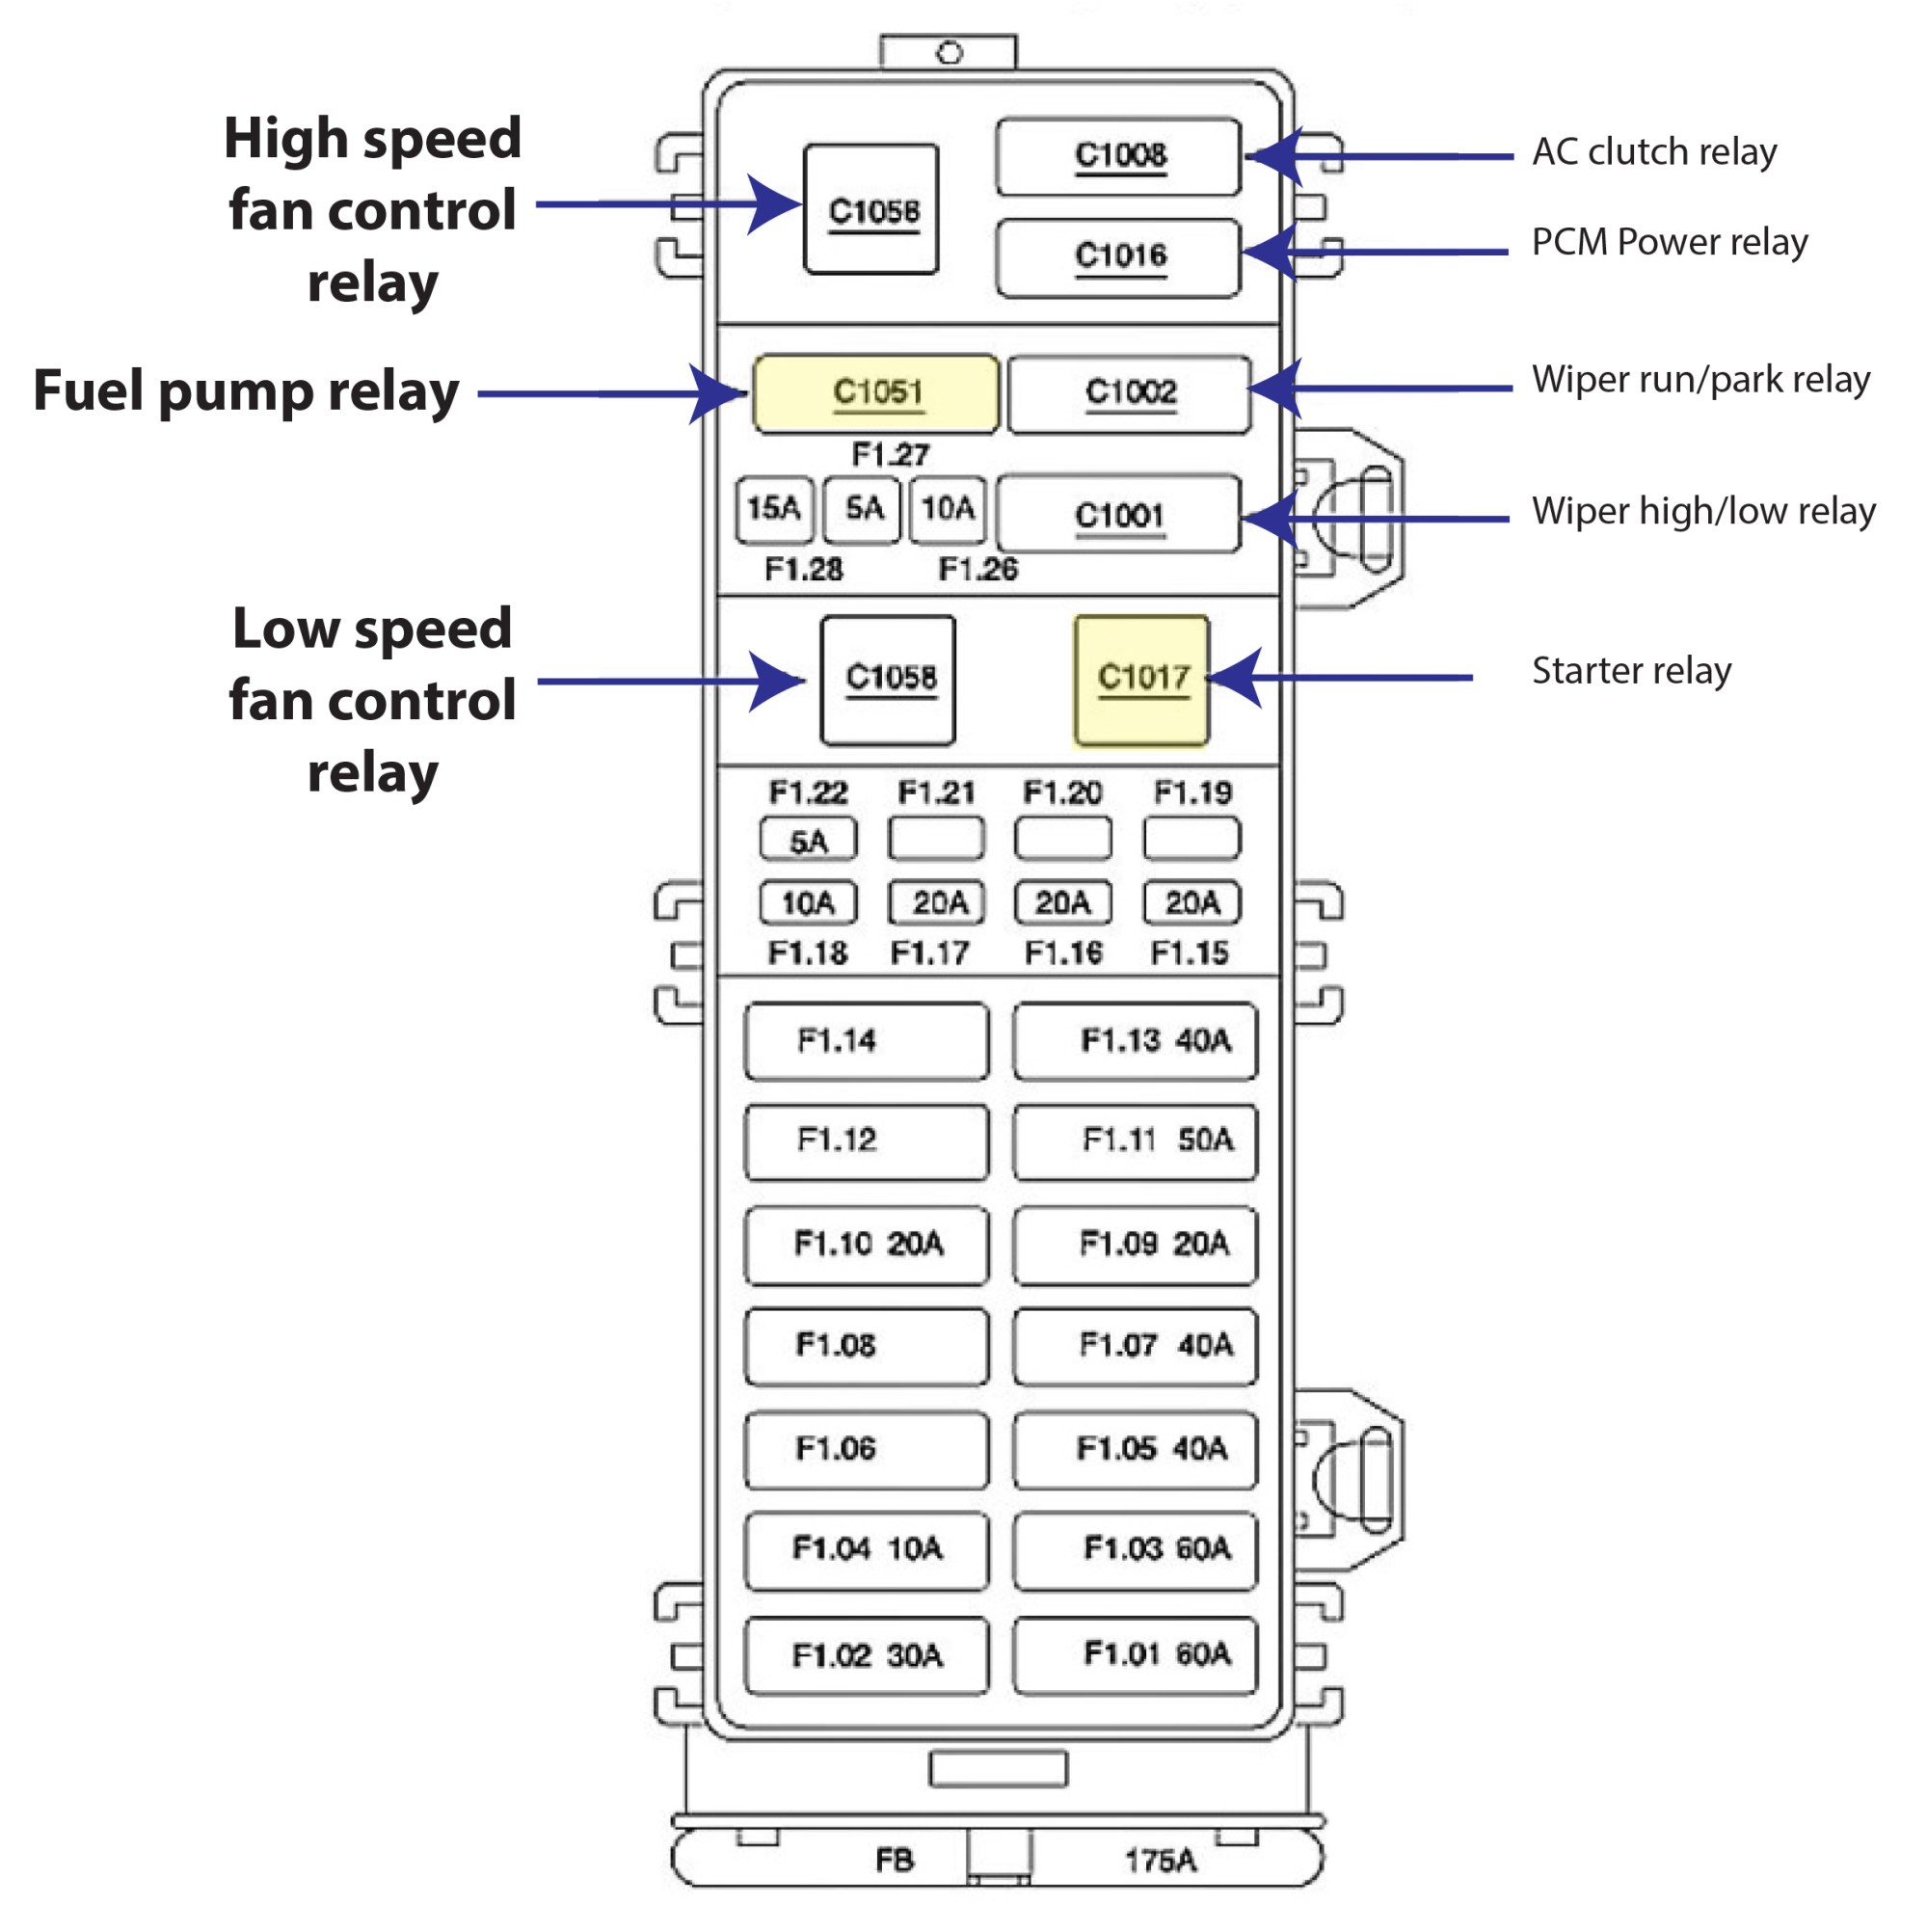 hight resolution of fuel pump relay location on 2000 ford taurus air conditioning wiring diagram in addition ford taurus fuel pump relay on 2001 ford taurus